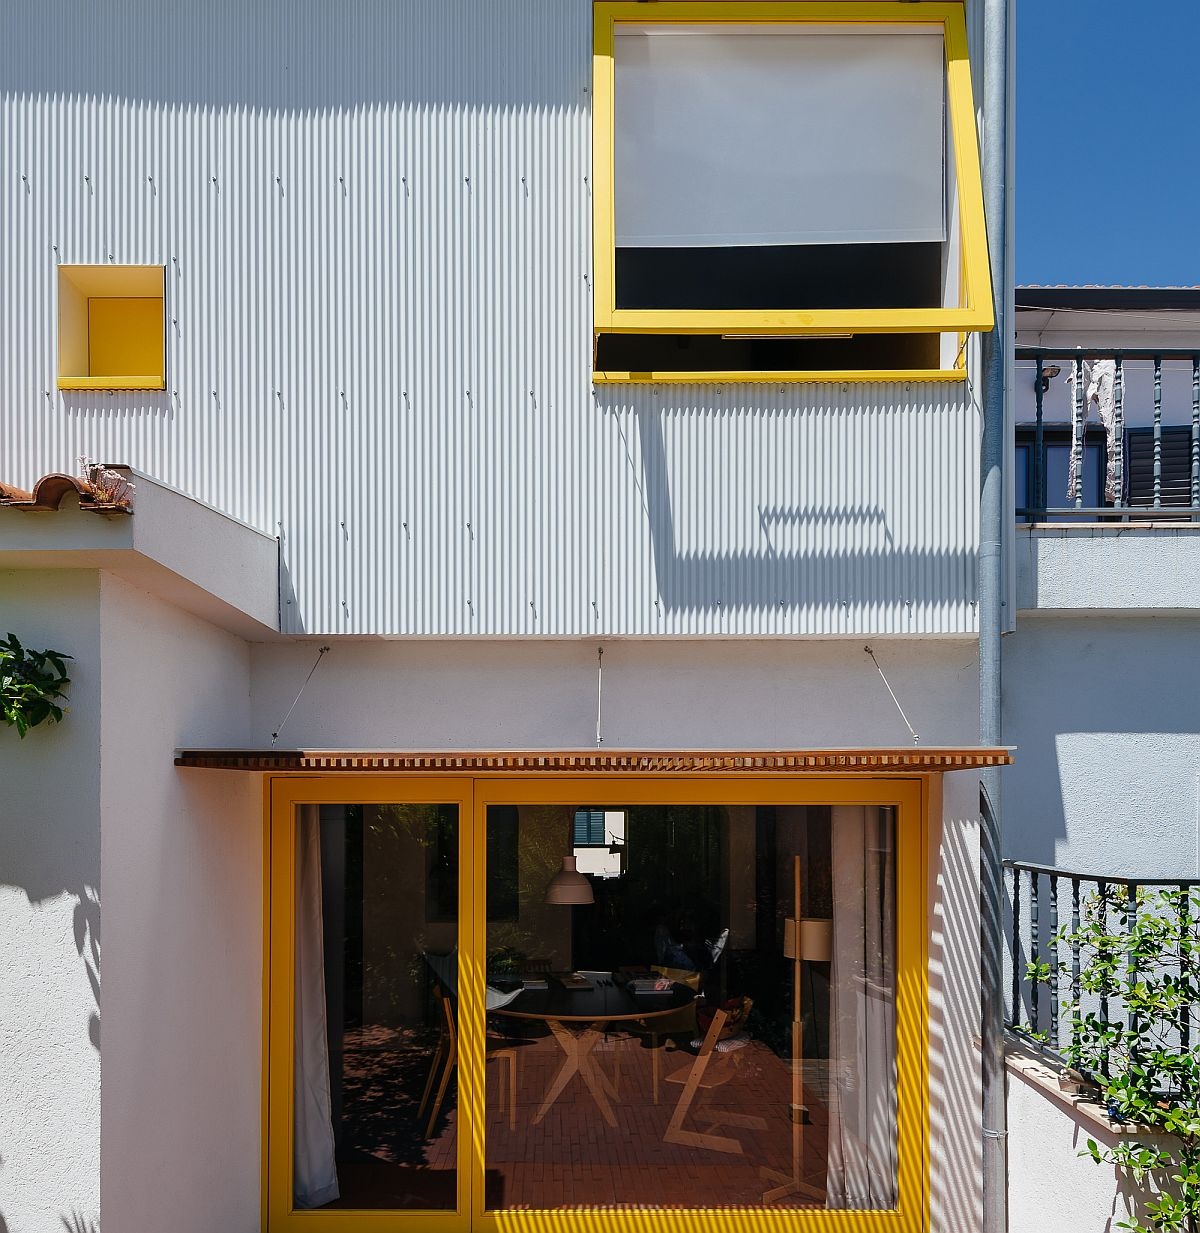 Modular-flexible-systems-bring-new-space-and-ventilation-into-AA8-small-home-in-Portugal-79557